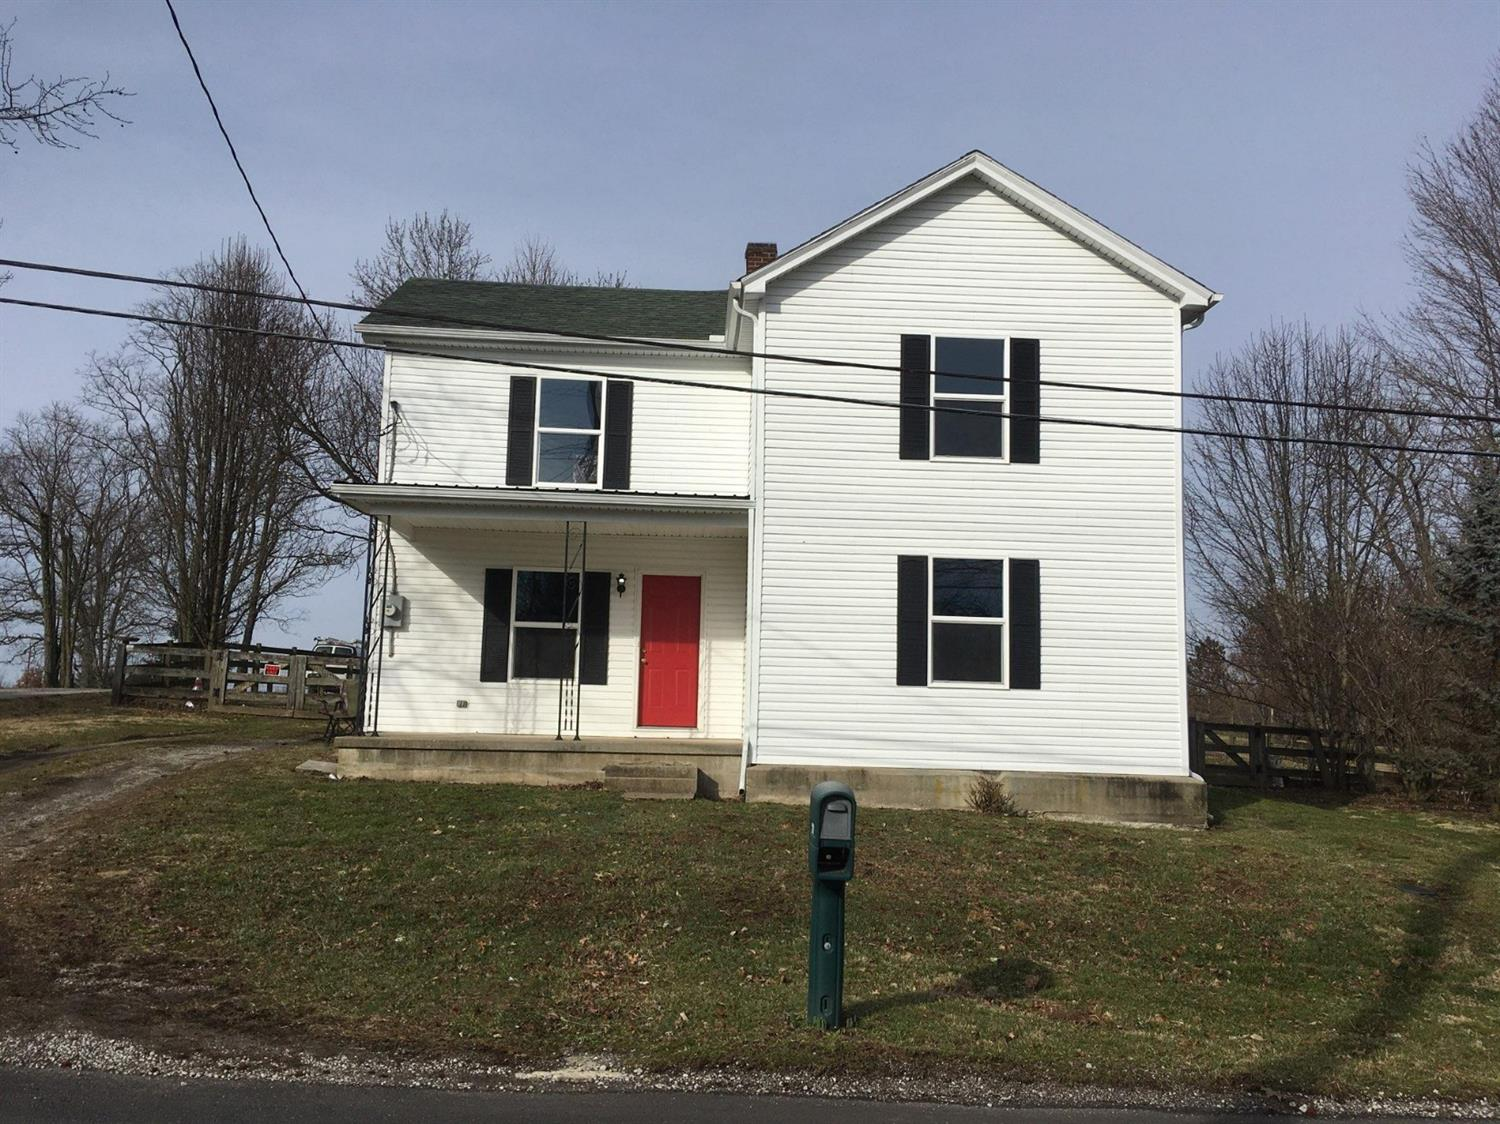 121 N Kendle St Jefferson Twp, OH